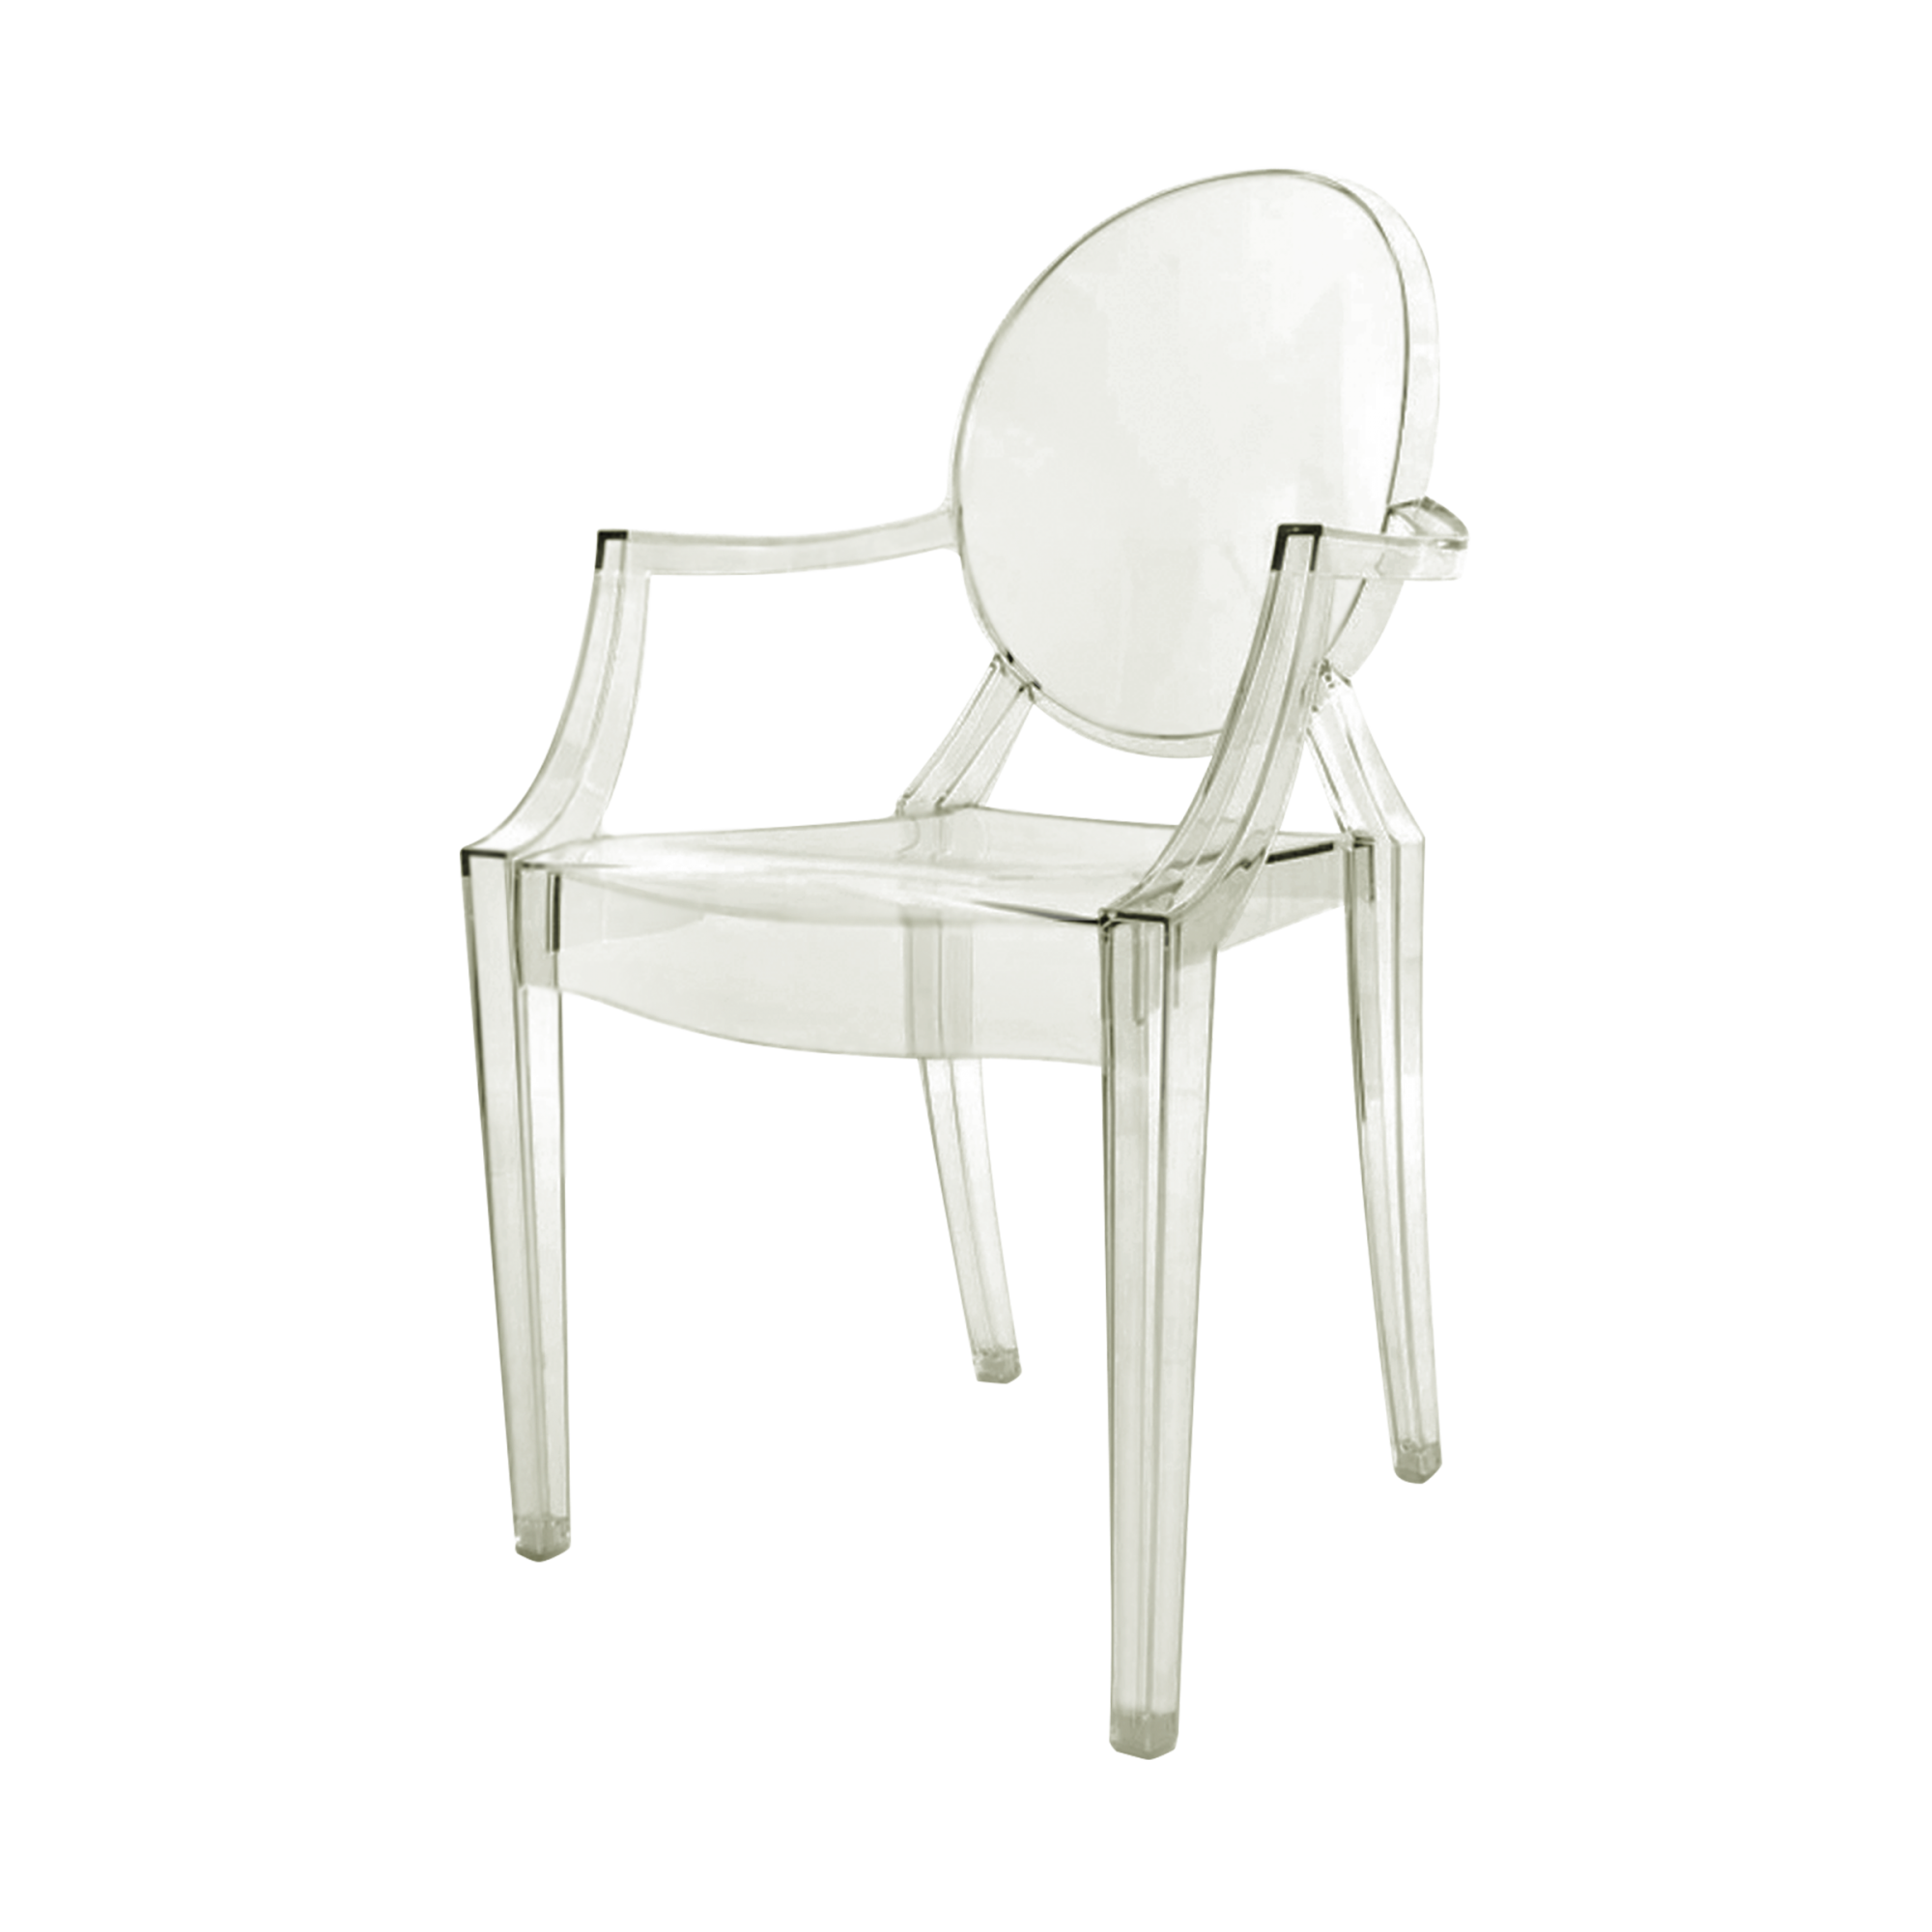 la chaise louis ghost latest d coration fauteuil louis ghost philippe starck ikea grande with. Black Bedroom Furniture Sets. Home Design Ideas